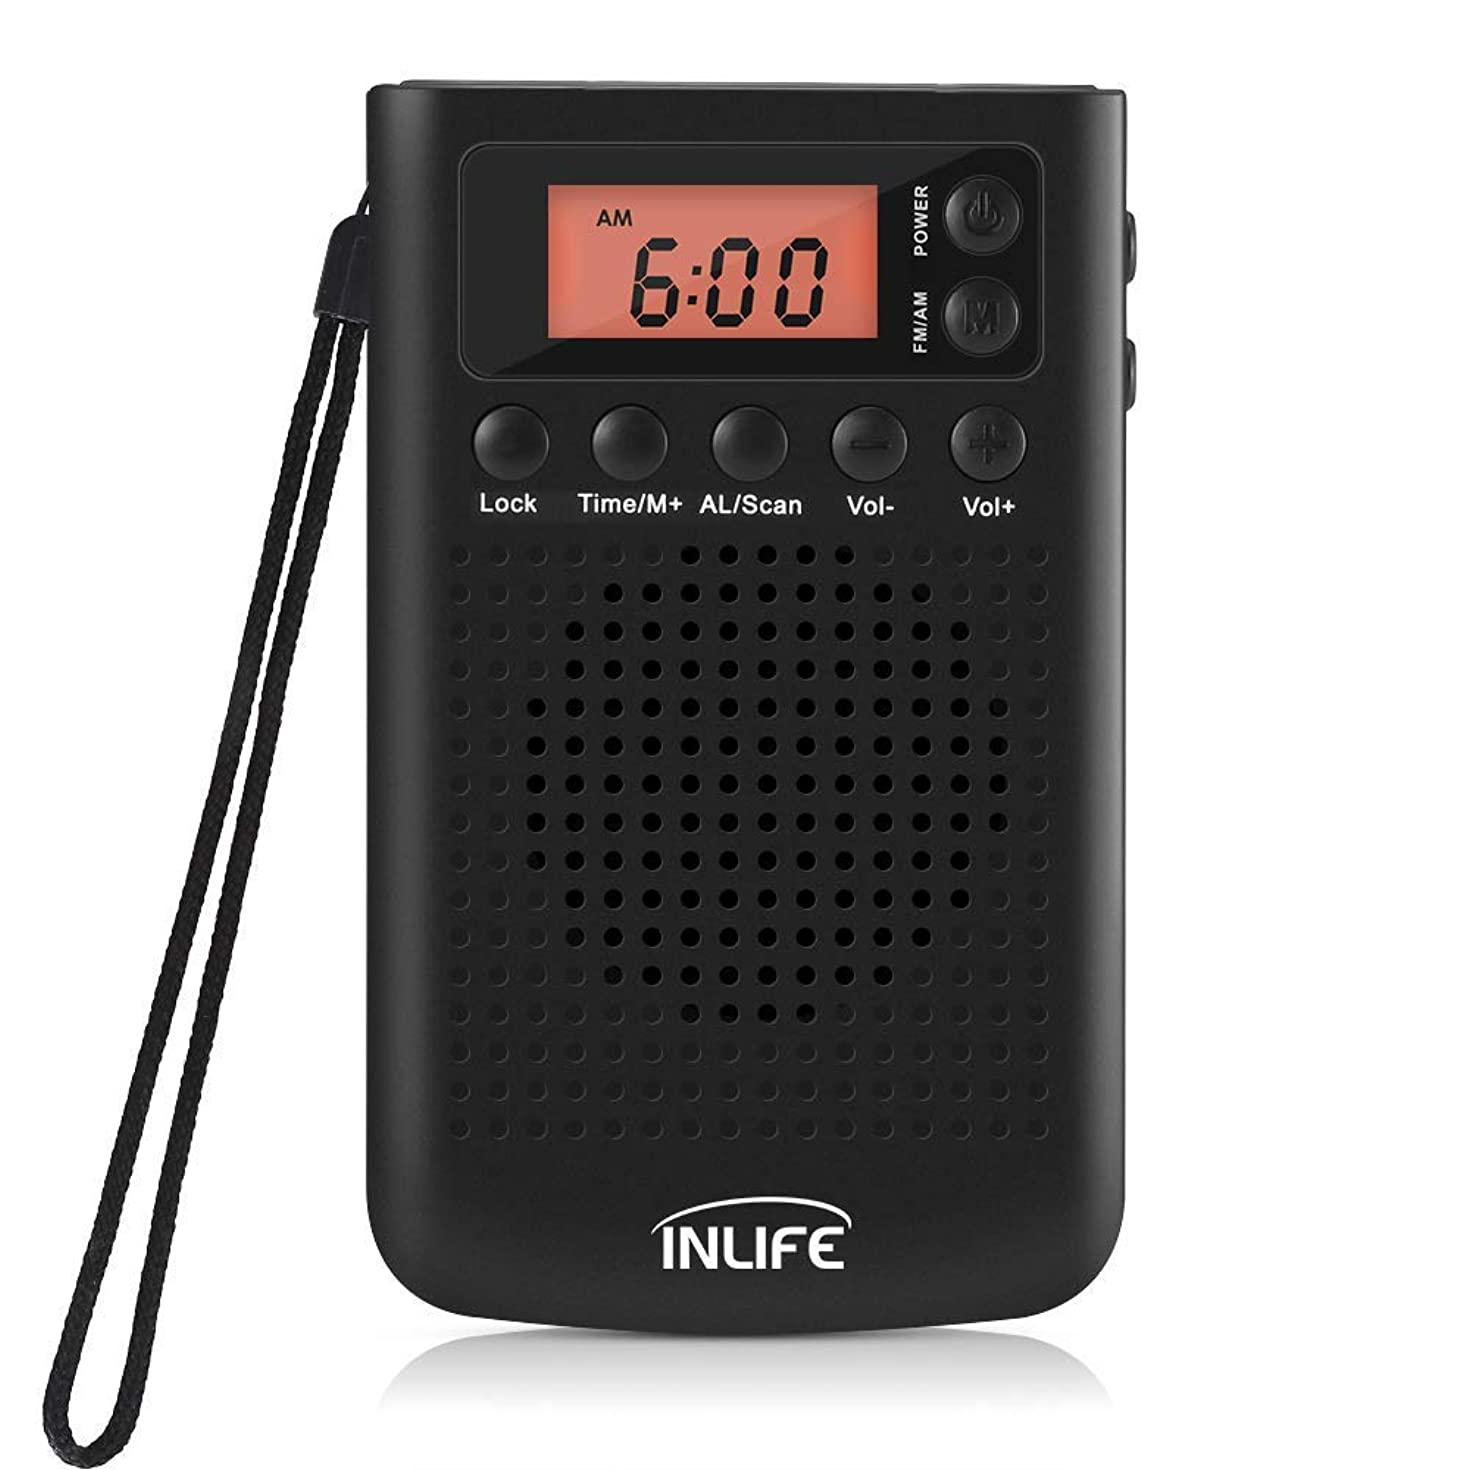 AM/FM Battery Operated Portable Pocket Radio, Small Digital Stereo Radio with Alarm Clock, Snooze Function and 3.5mm Headphone Jack for Walking, Travel